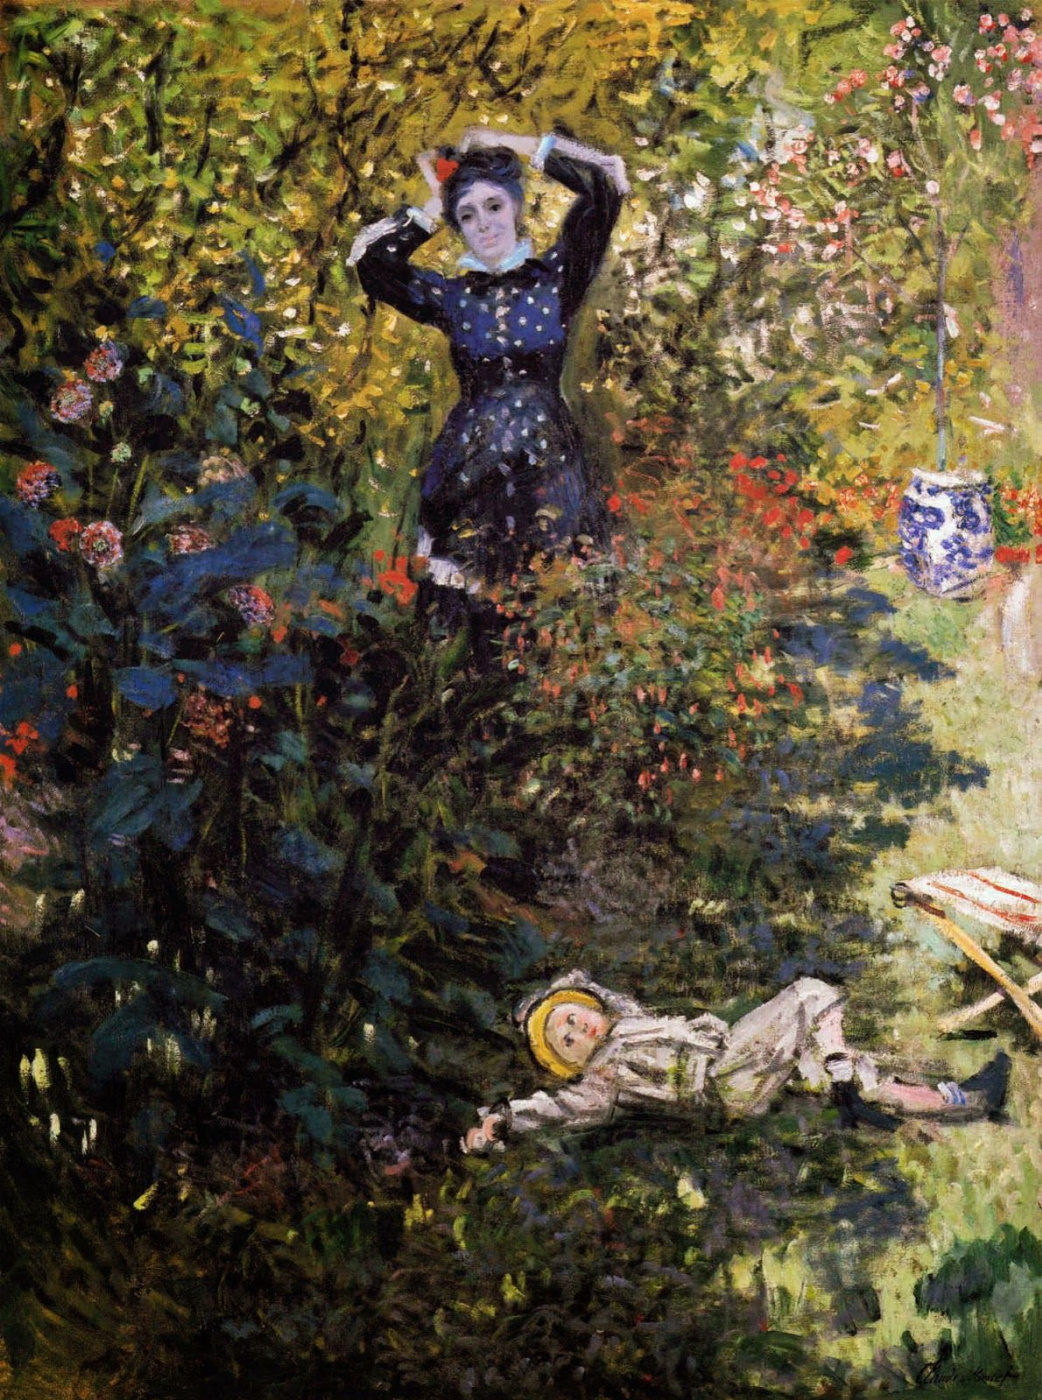 Claude Monet. Camille and Jean Monet in the garden at Argenteuil